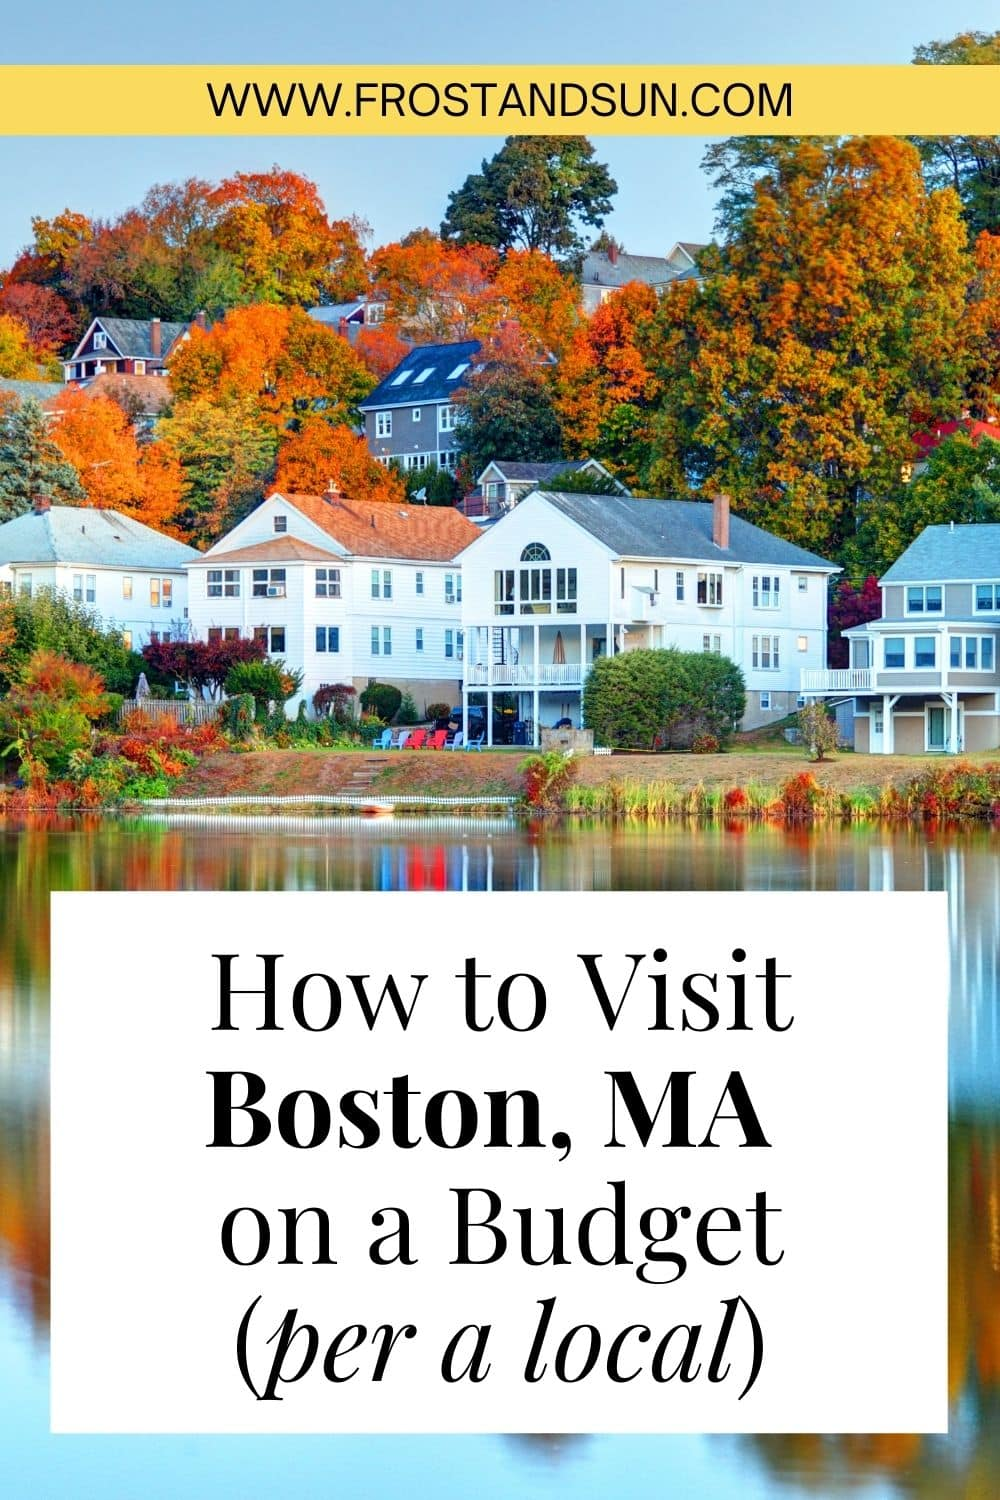 How to Visit Boston on a Budget: Tips from a Local